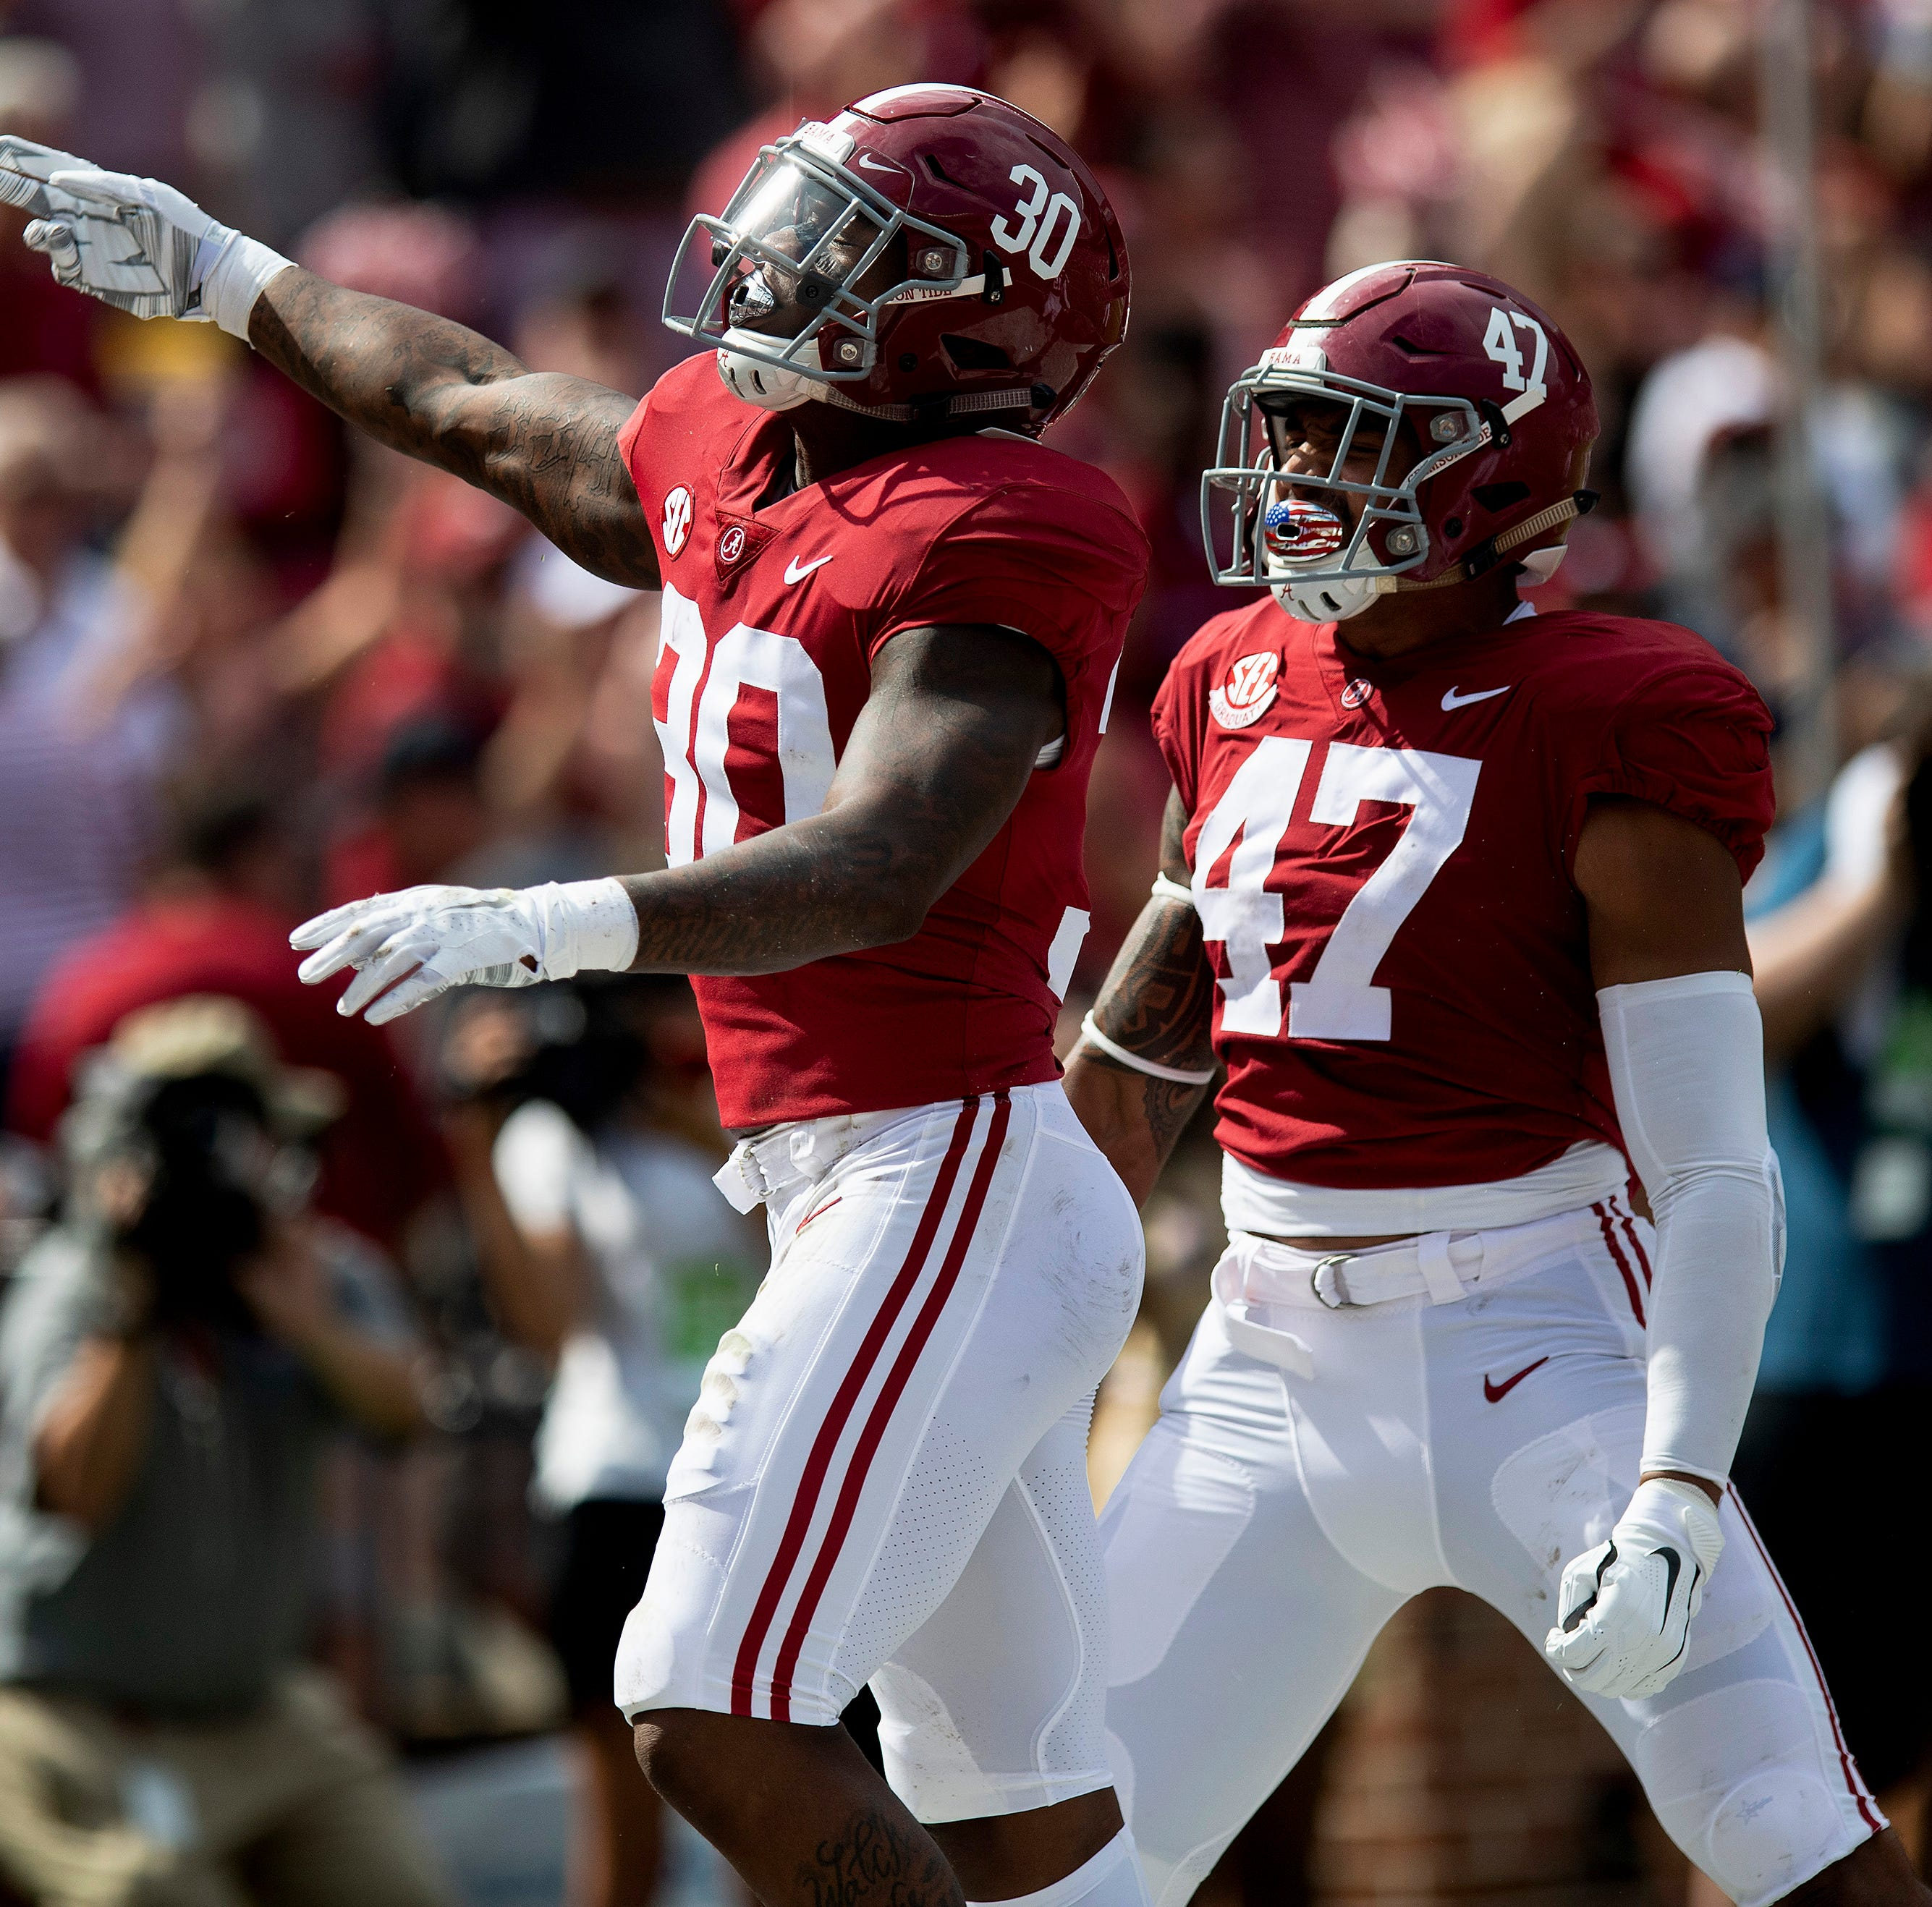 Mack will be back: Alabama star Mack Wilson's mom says he's returning for senior year